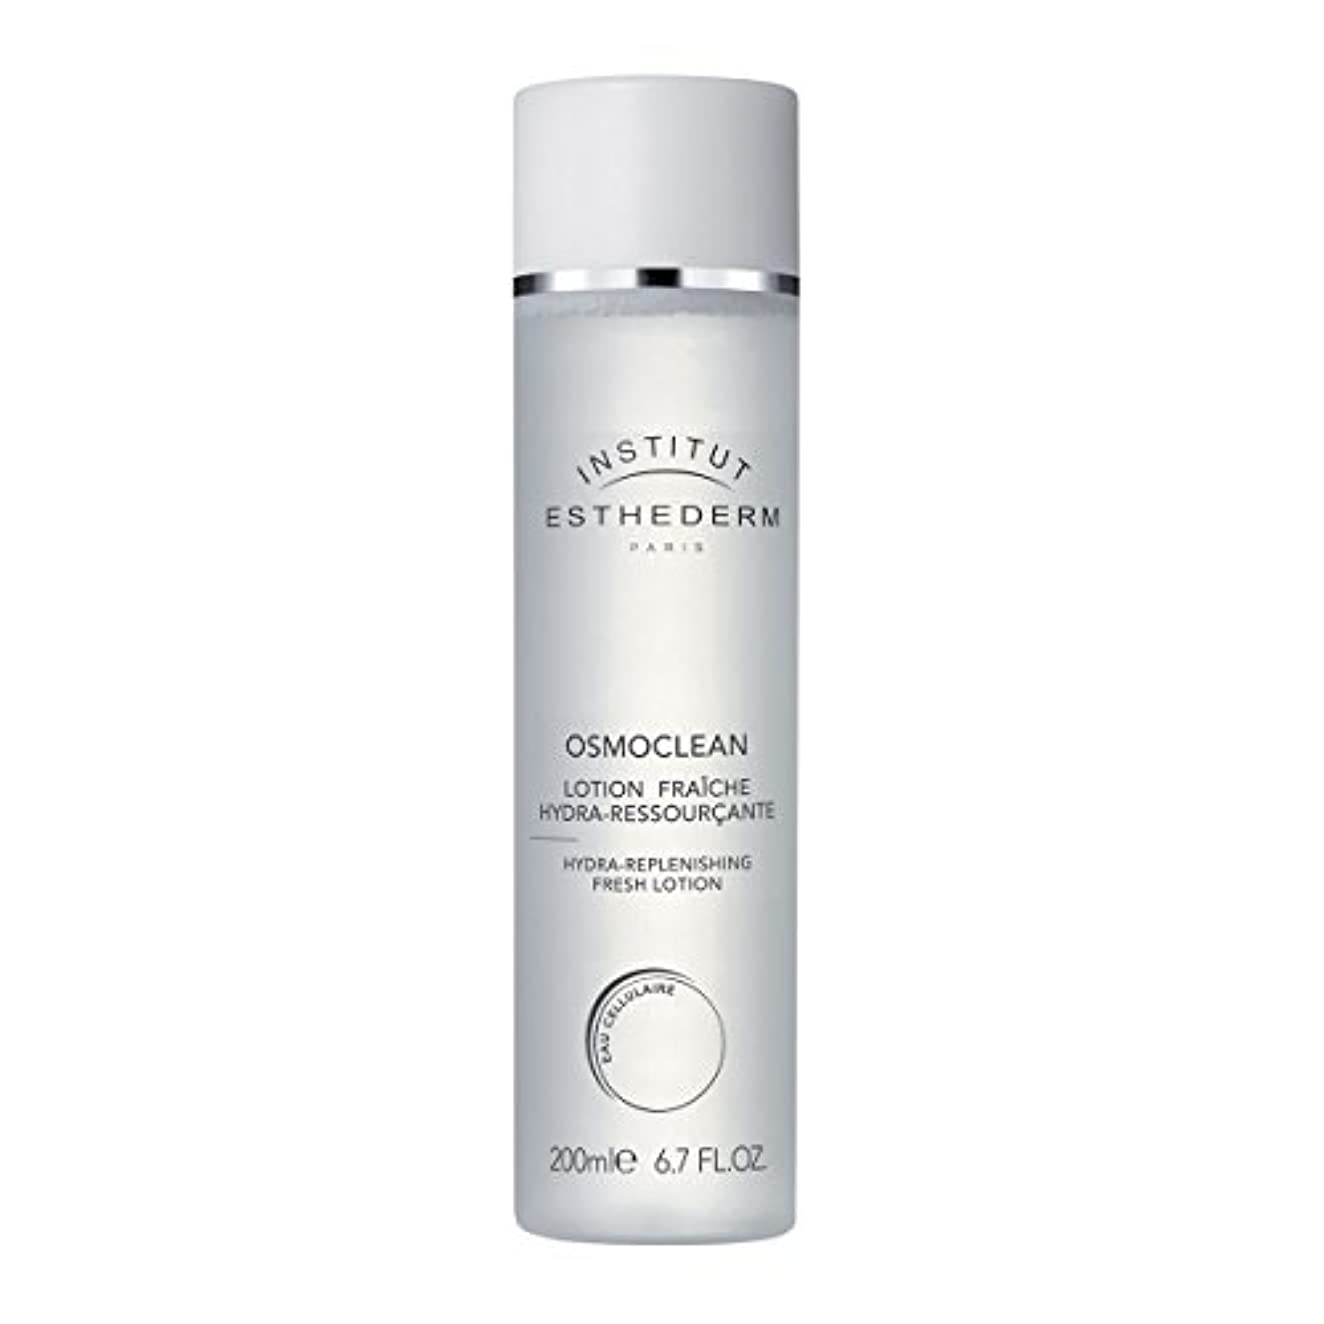 松再生可能こどもの日Institut Esthederm Osmoclean Hydra-replenishing Fresh Lotion 200ml [並行輸入品]